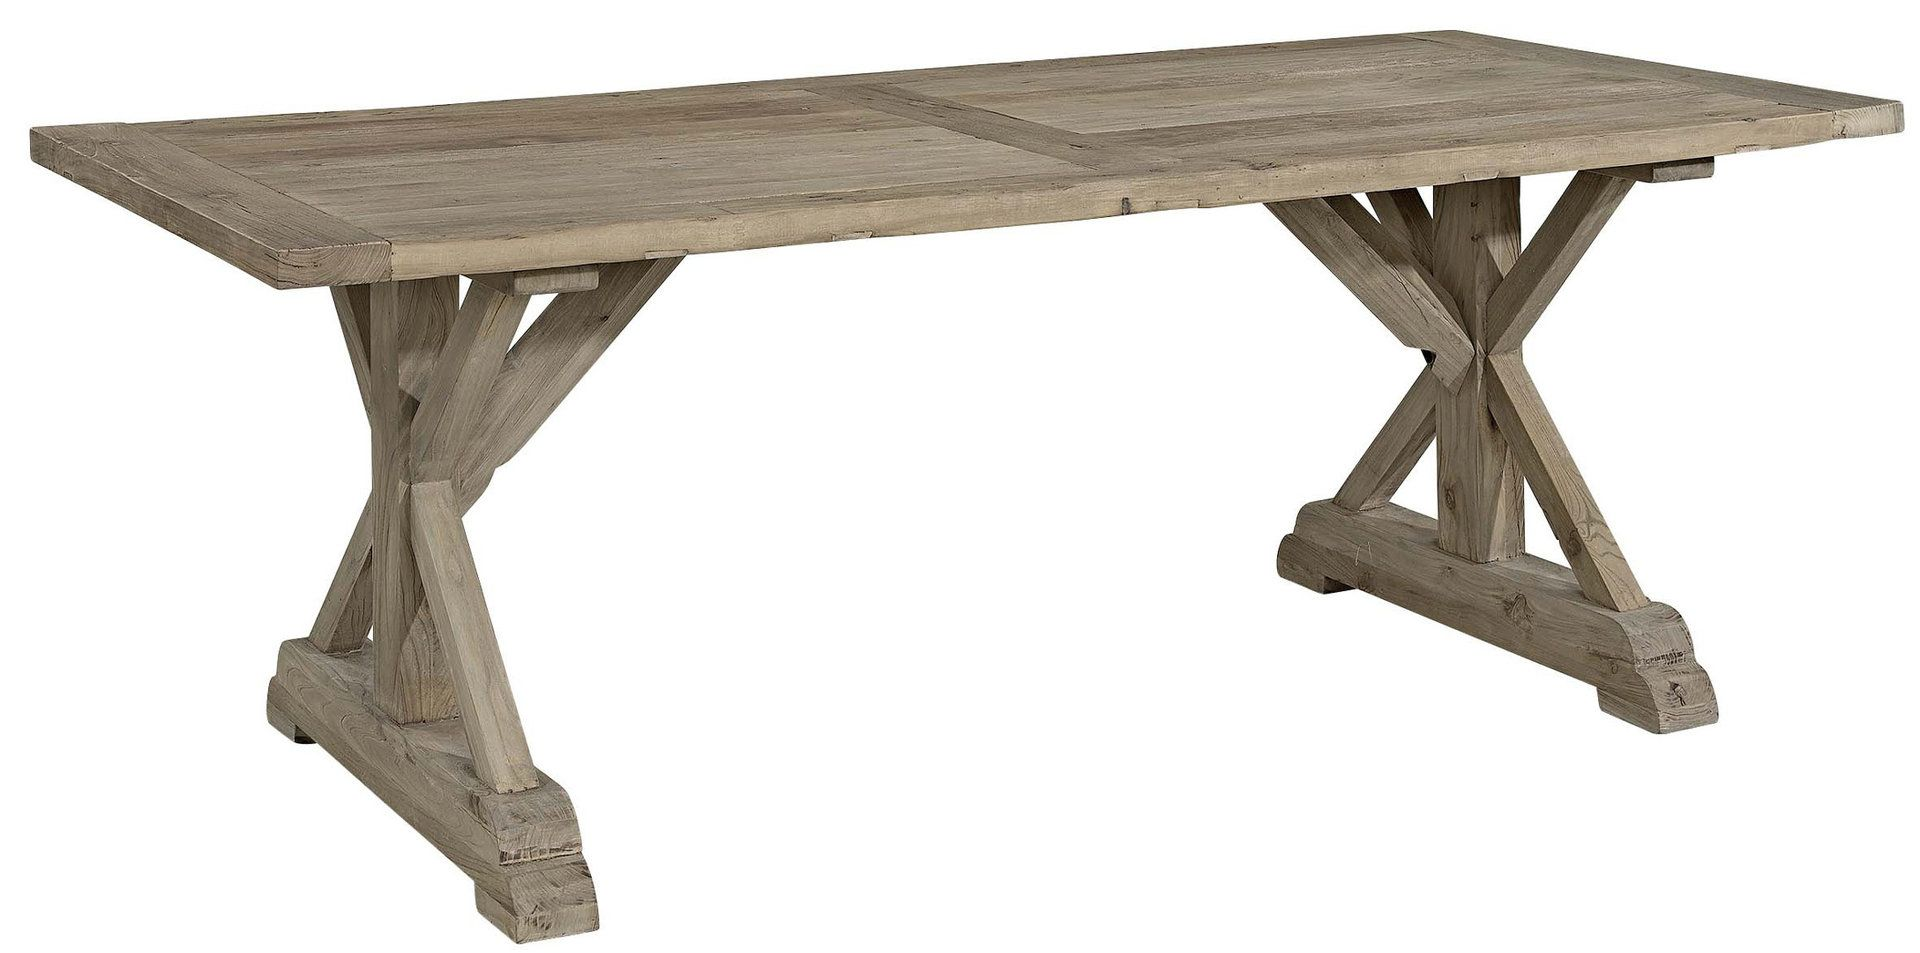 1499,00 EUR Artwood ELMWOOD Diningtable Cross 220x100